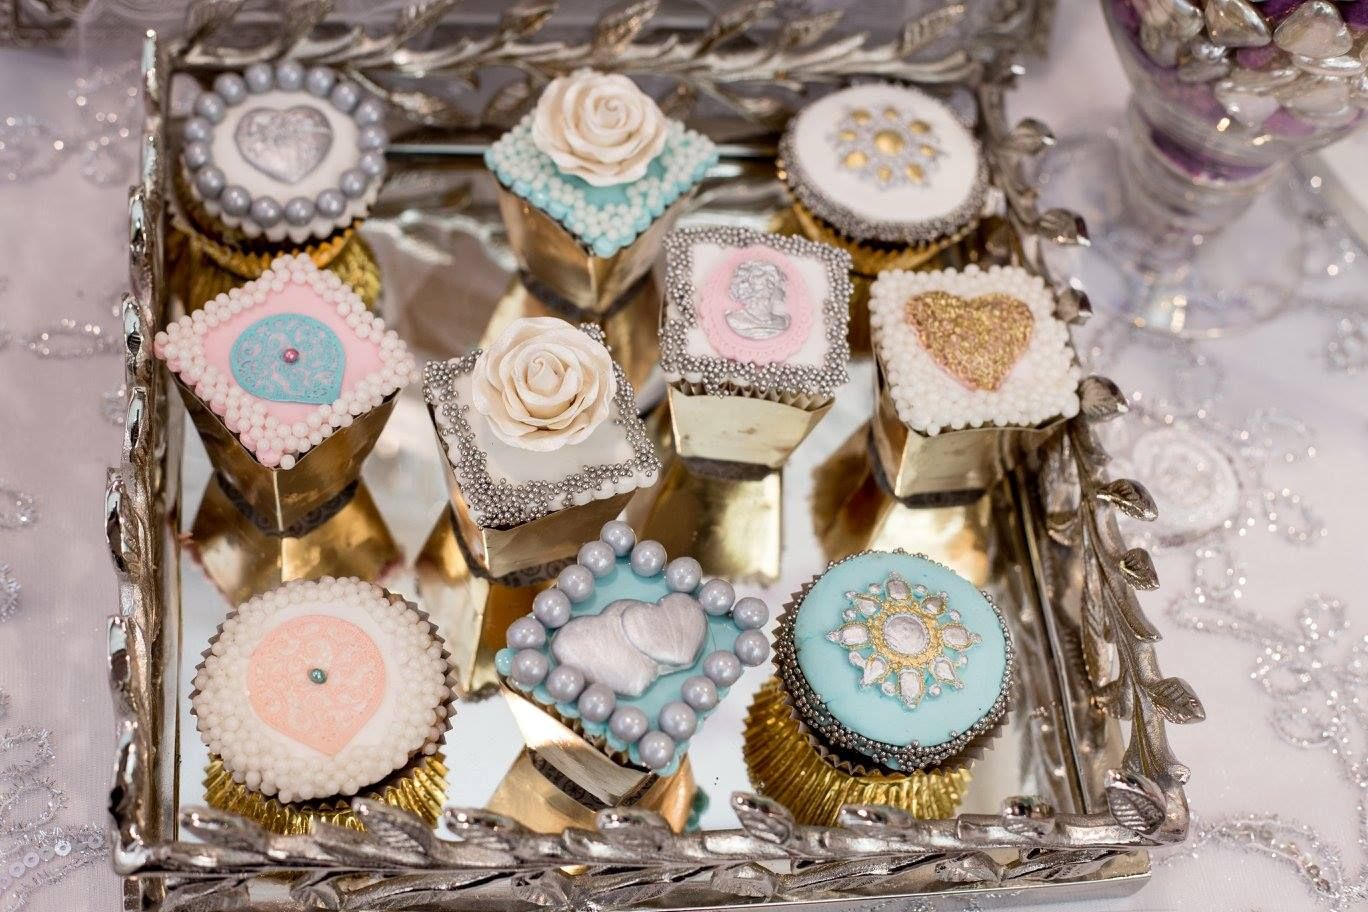 Have you ever seen cupcakes that look so chic? Cupcakes designed and baked by Toronto's Edible Art Shop